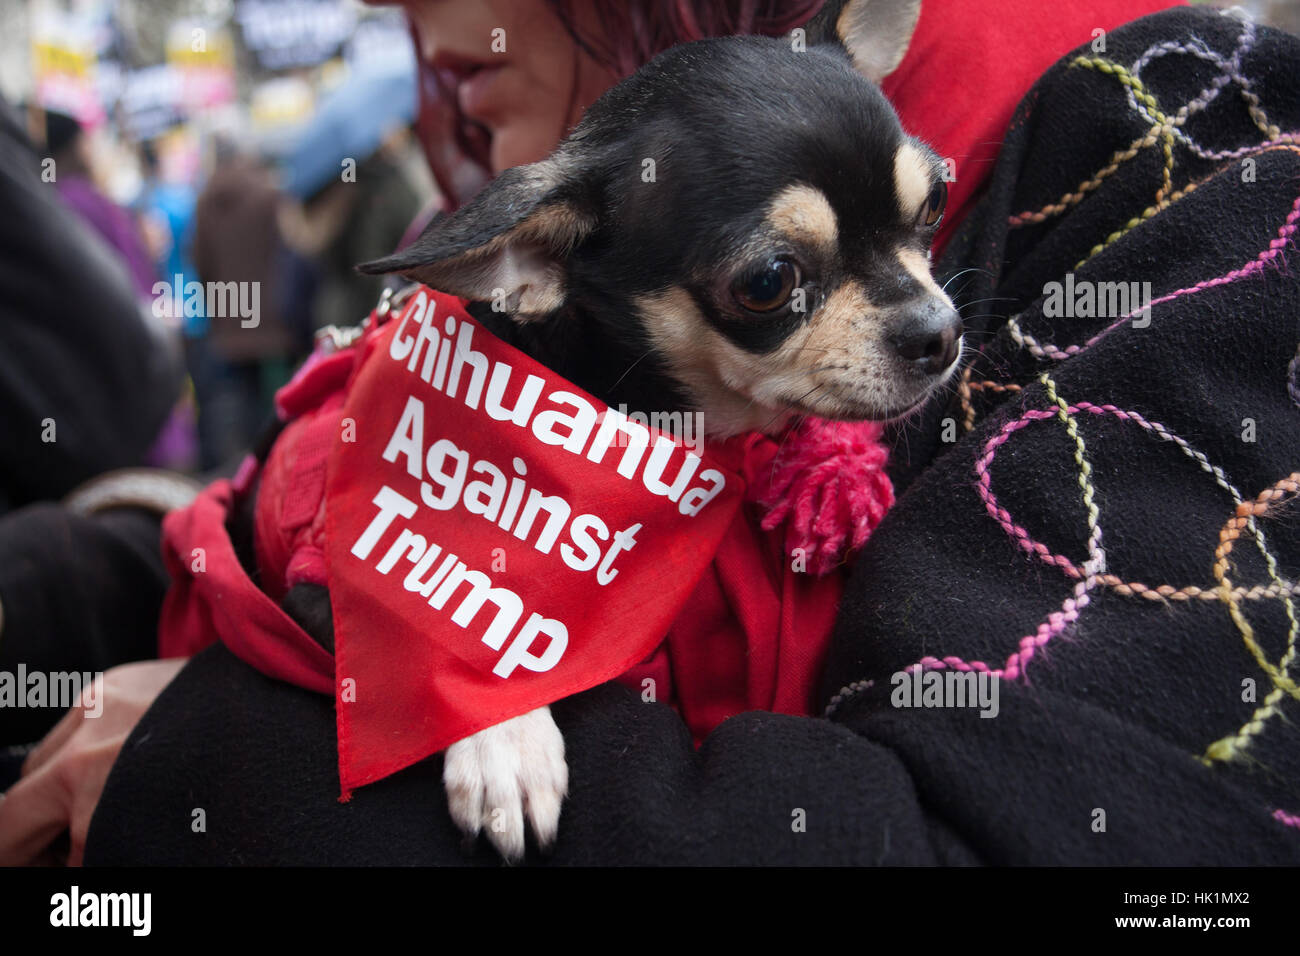 London, UK. 4th February, 2017. A little dog at 4th Feb 2017 London March against Donald Trump Credit: Pauline A - Stock Image